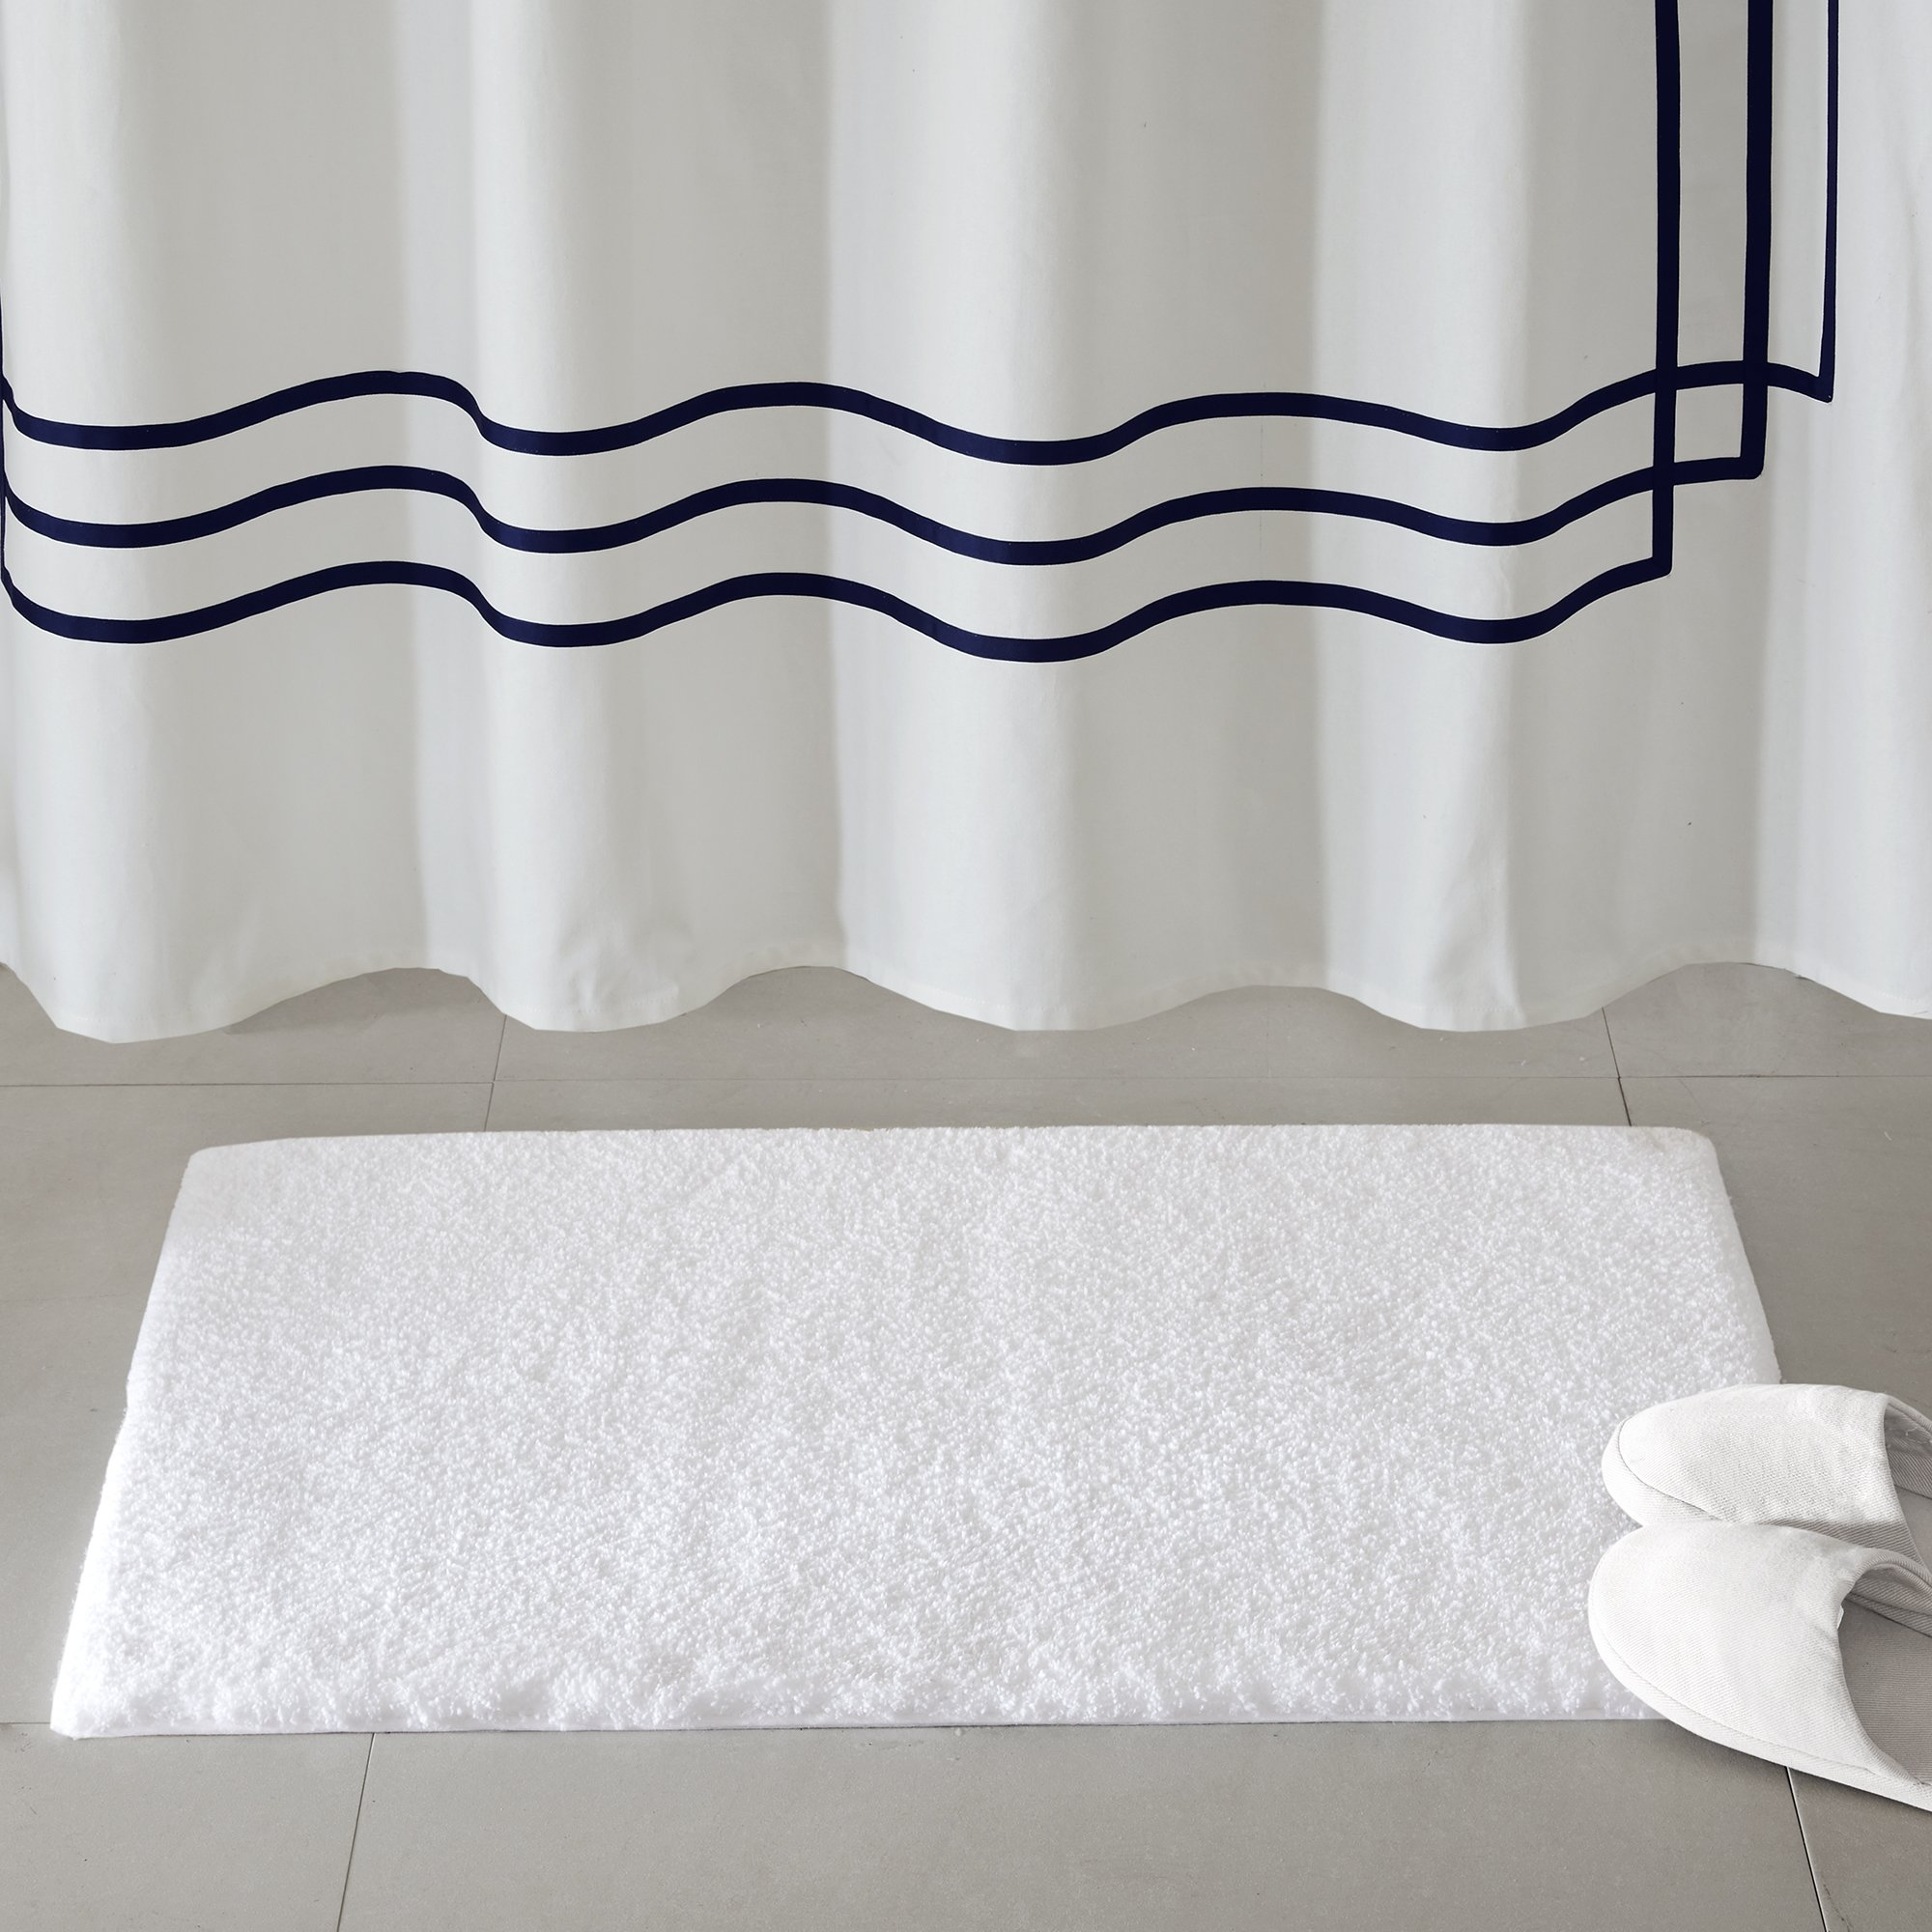 Permalink to Frontgate Signature Bath Rugs